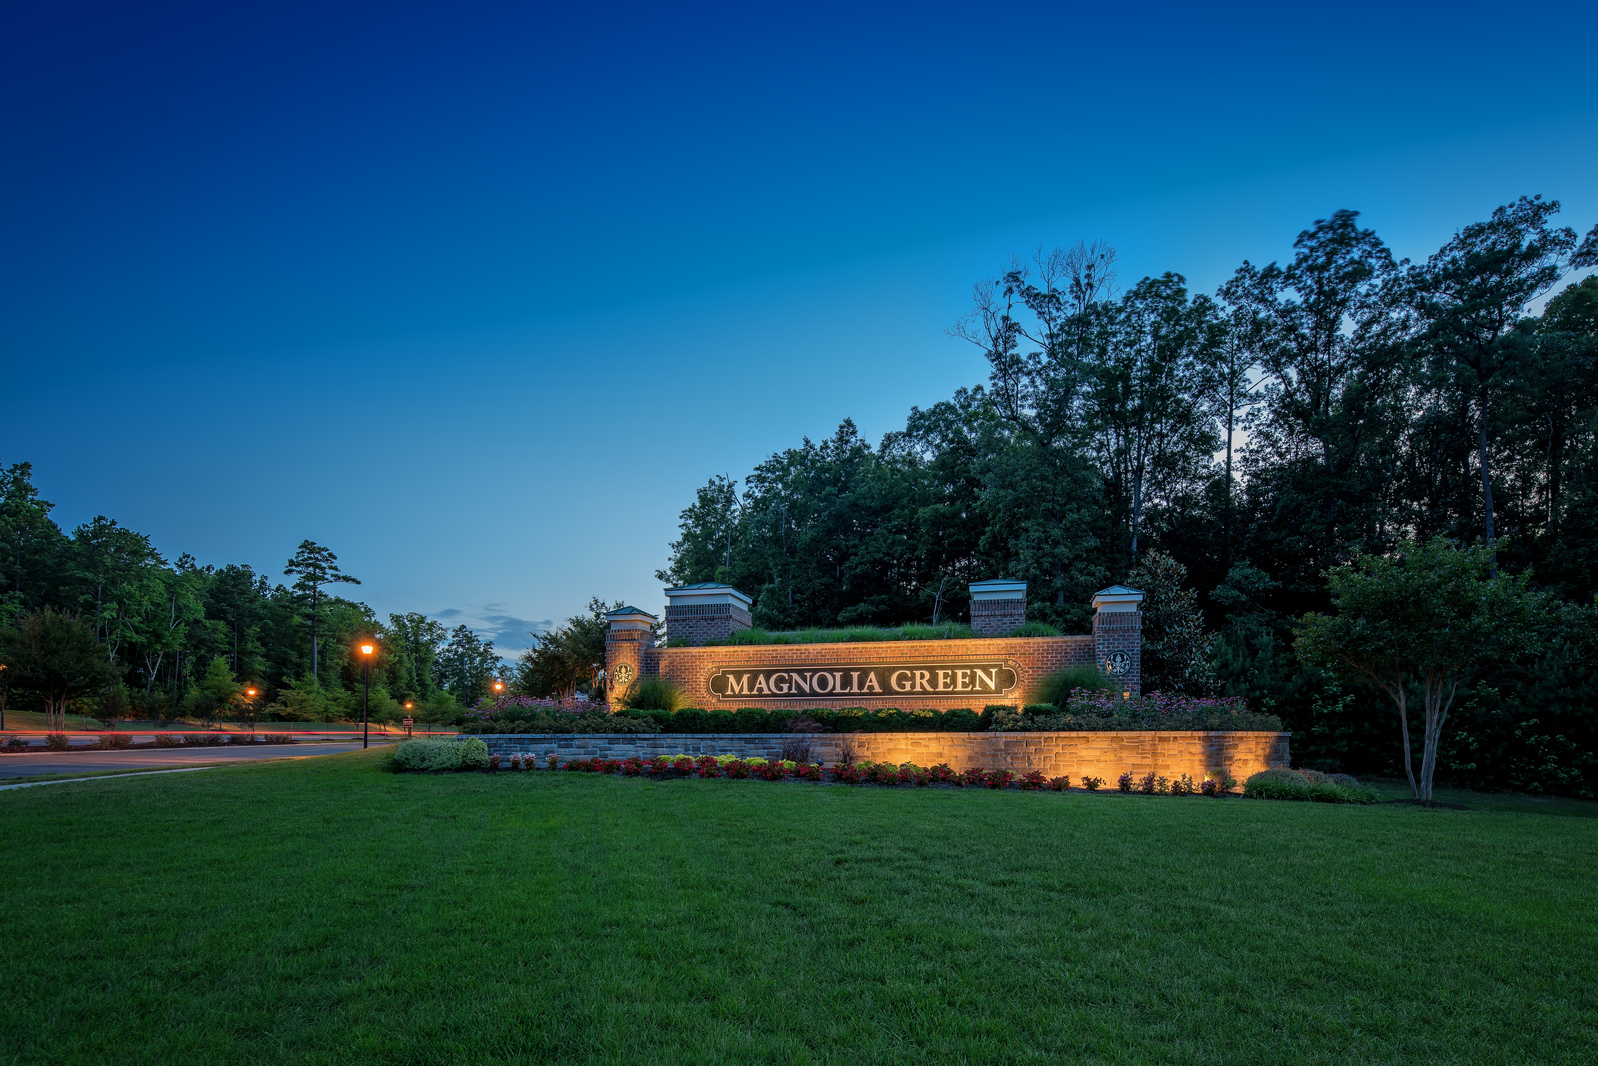 New homes for sale at magnolia green in moseley va within the voted 2017s best new home community in greater richmond by richmond times dispatch readers solutioingenieria Images